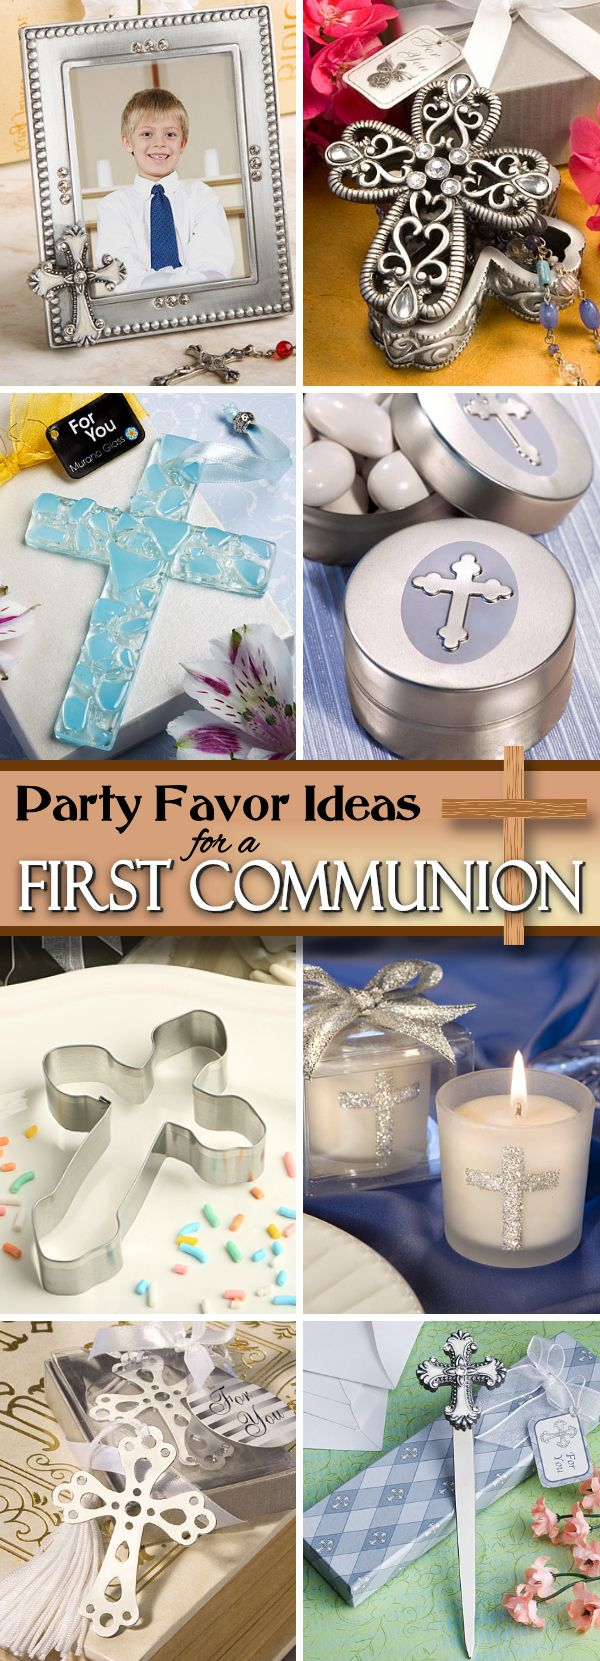 Celebrate first communion with the perfect religious theme party favors.